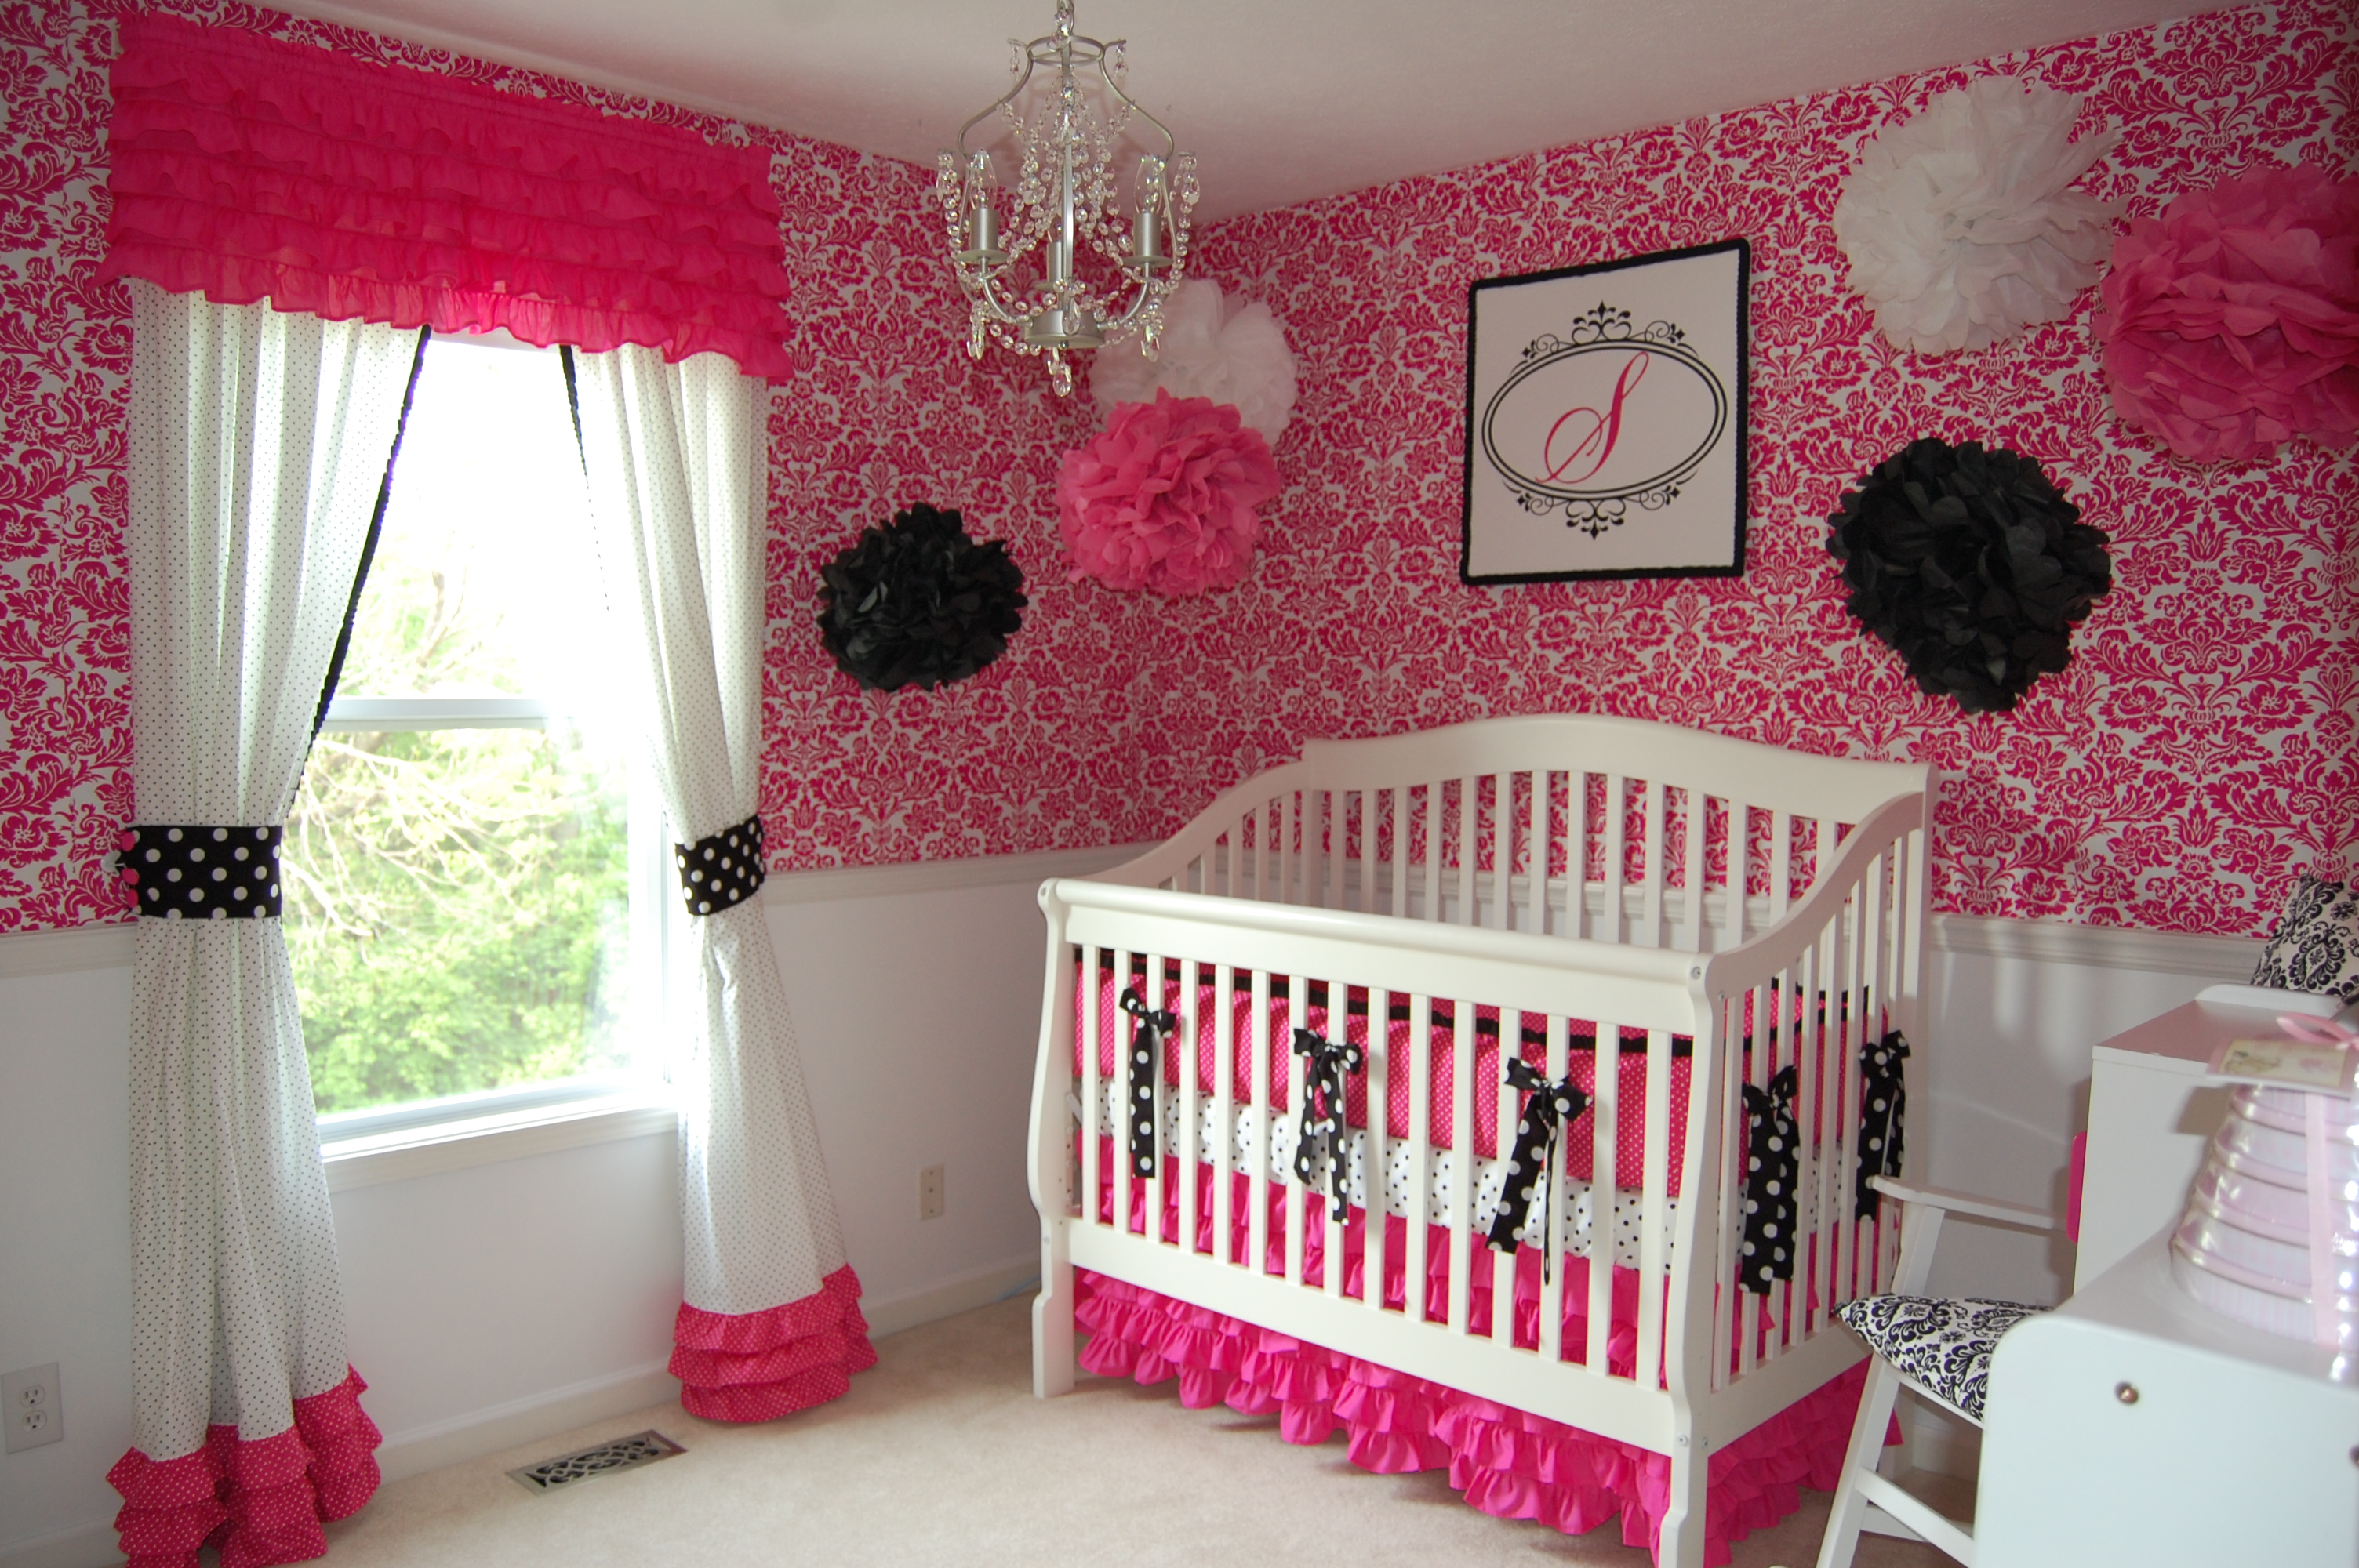 Decoration chambre bebe fille photo - Decoration chambre de bebe fille ...